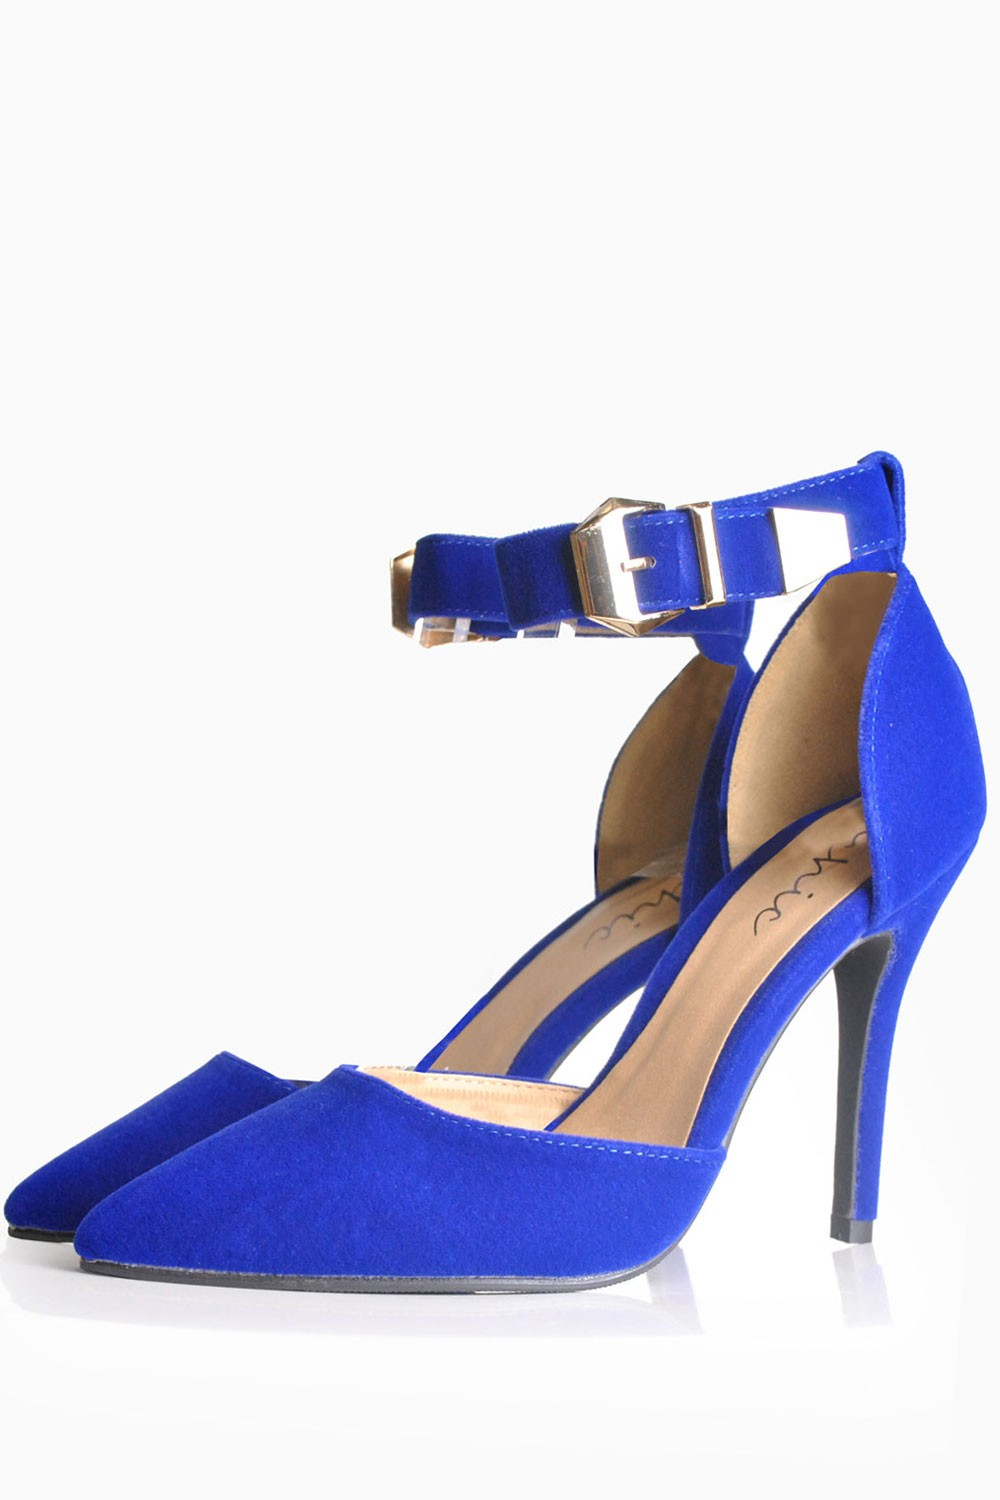 Ramona ankle strap pointed shoe in cobalt blue